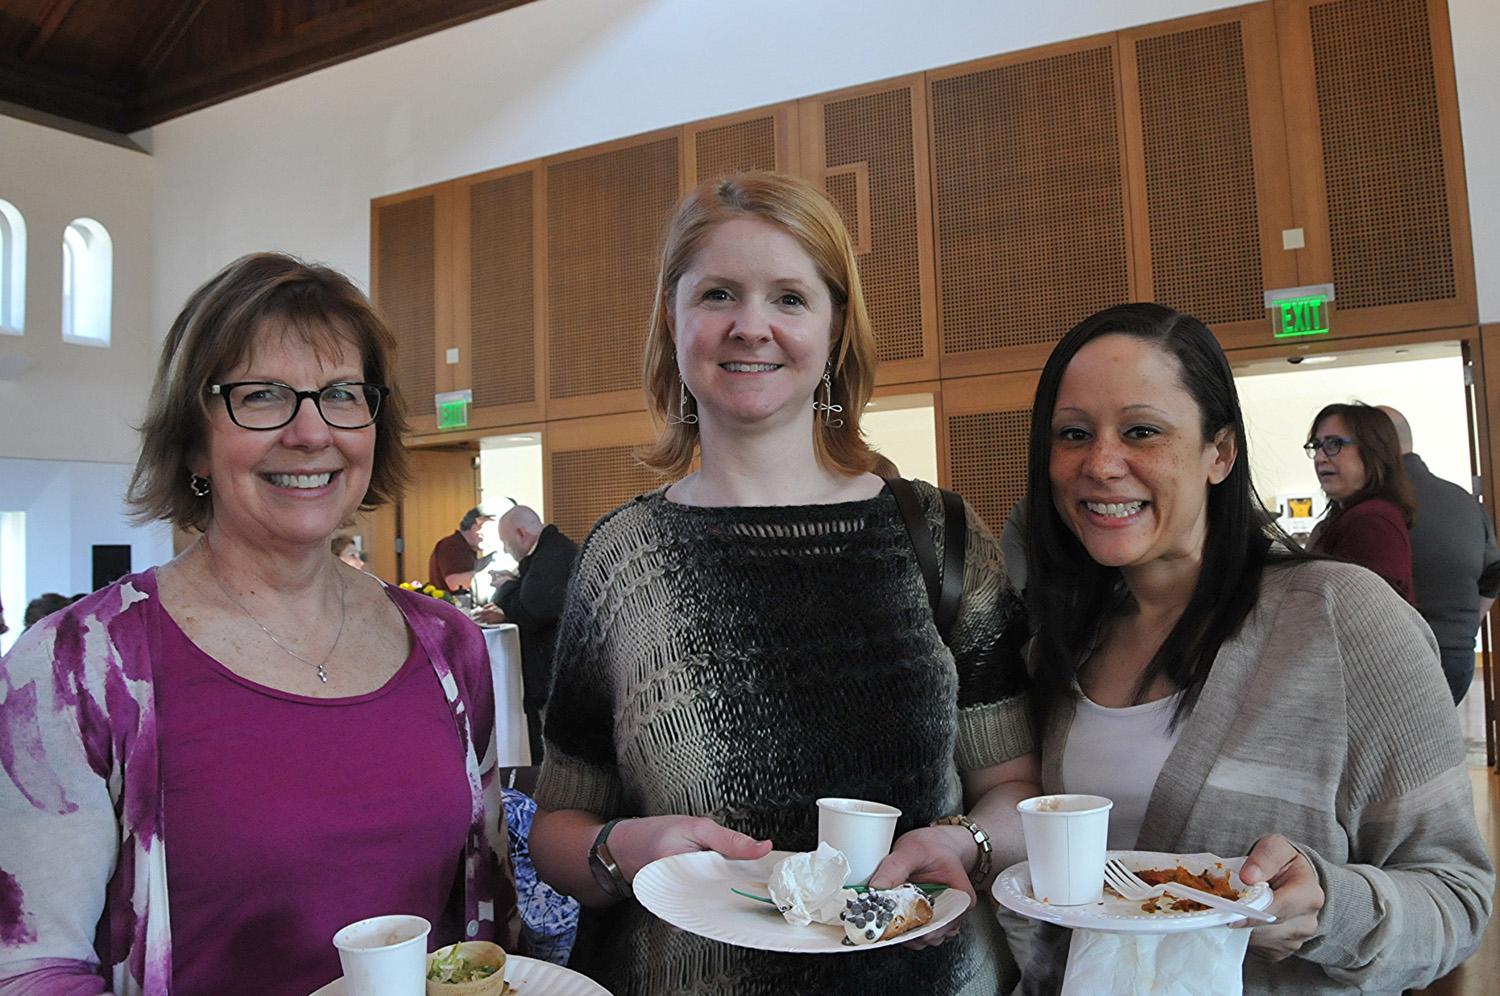 Maureen Zimmer, academic affairs coordinator, Megan Flagg, executive assistant to the provost and vice president for academic affairs, and Lisa Sacks, assistant director for curricular initiatives.